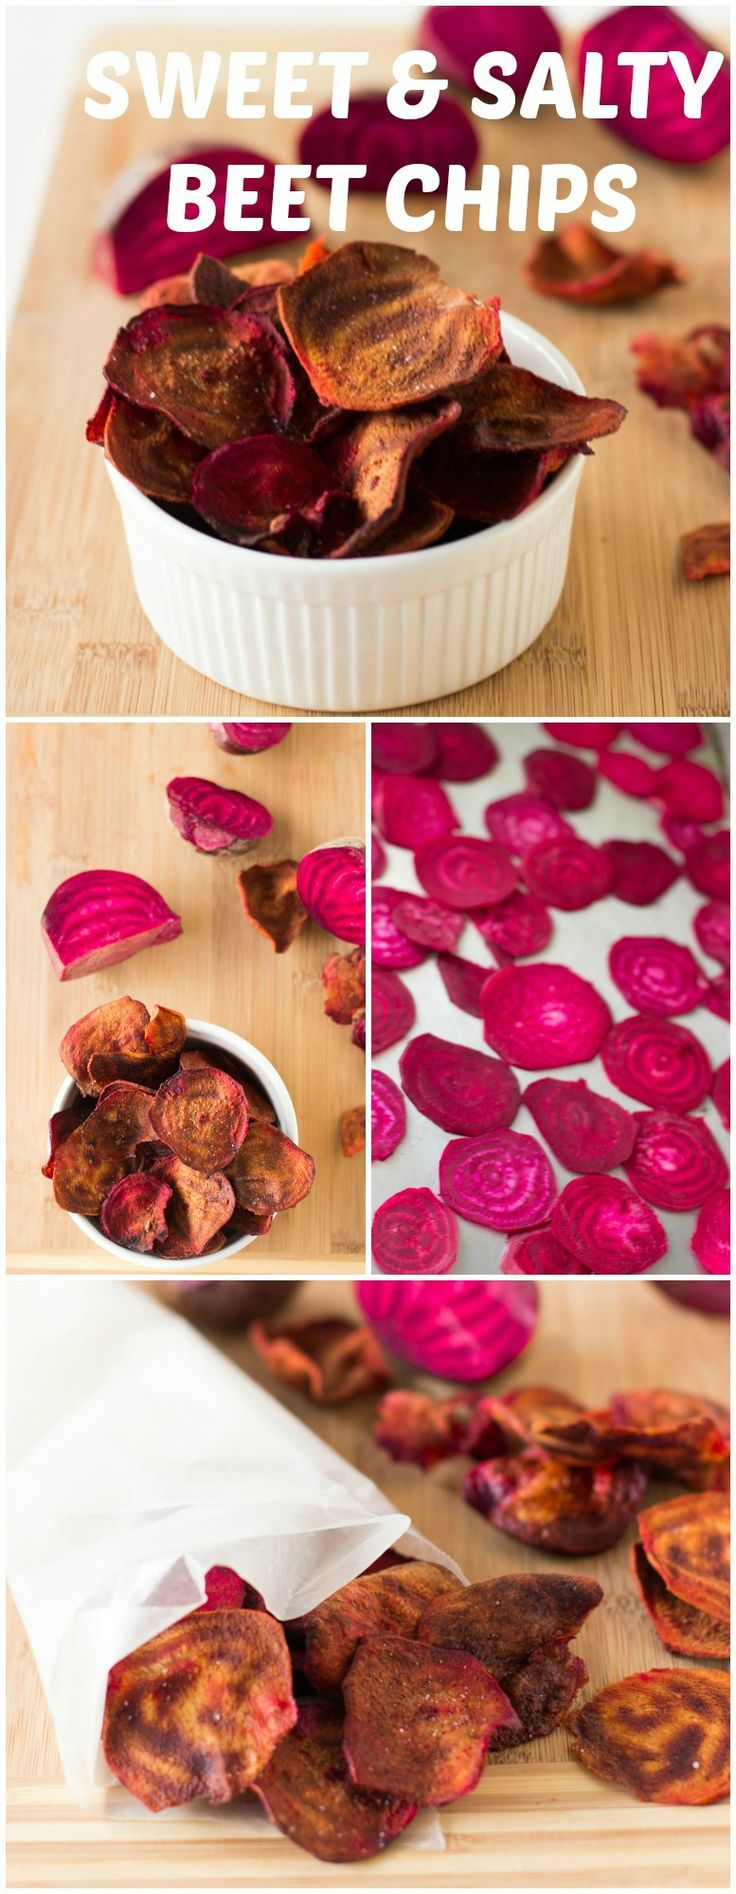 Can't believe how easy these are! Healthy delicious beetroot chips. Cook in the oven to make a family favourite!